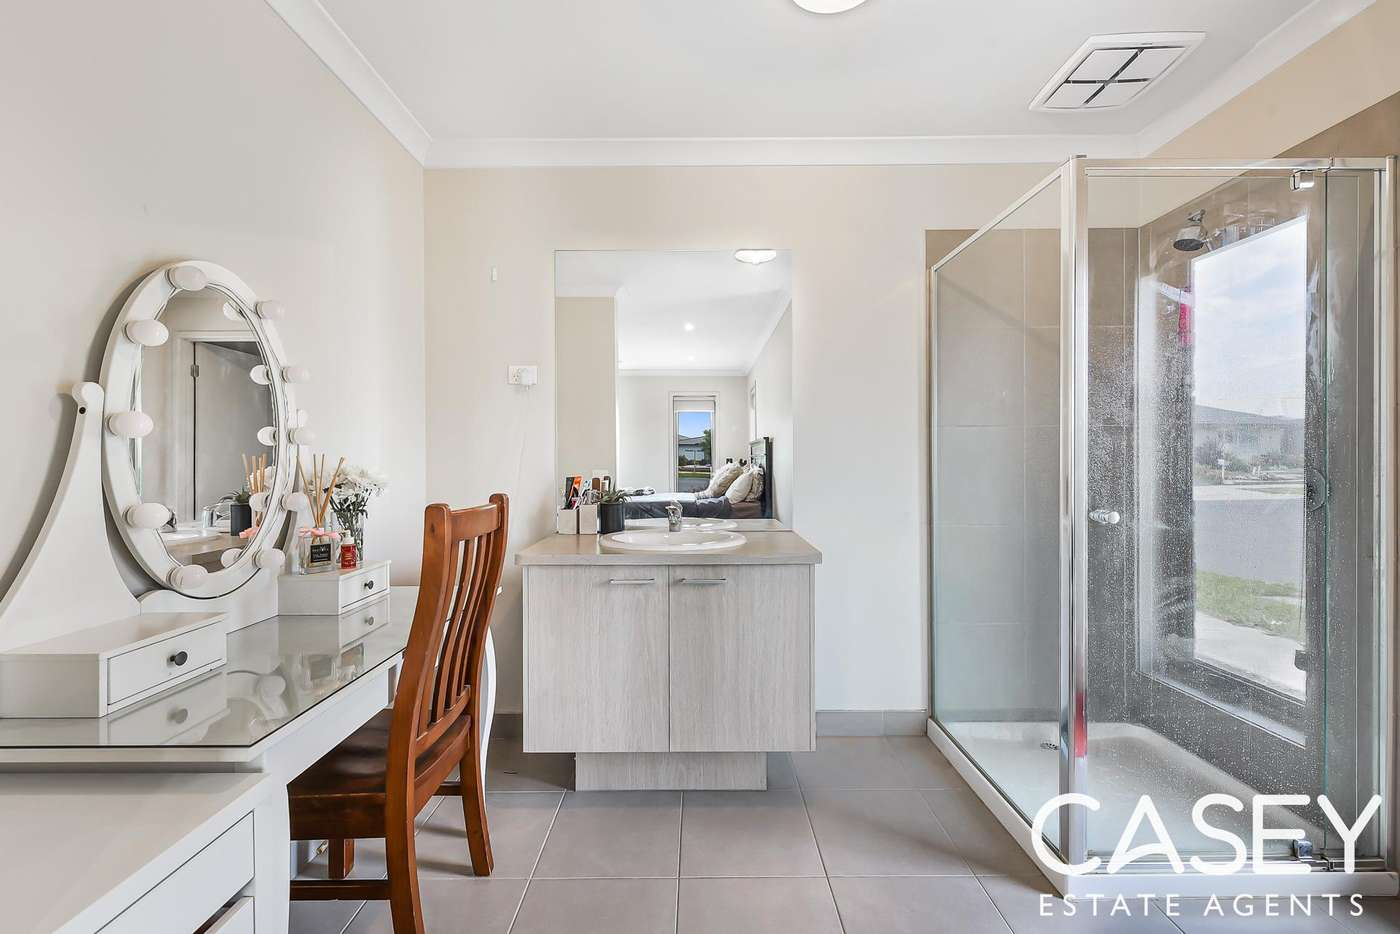 Sixth view of Homely house listing, 12 Burchill Avenue, Cranbourne East VIC 3977